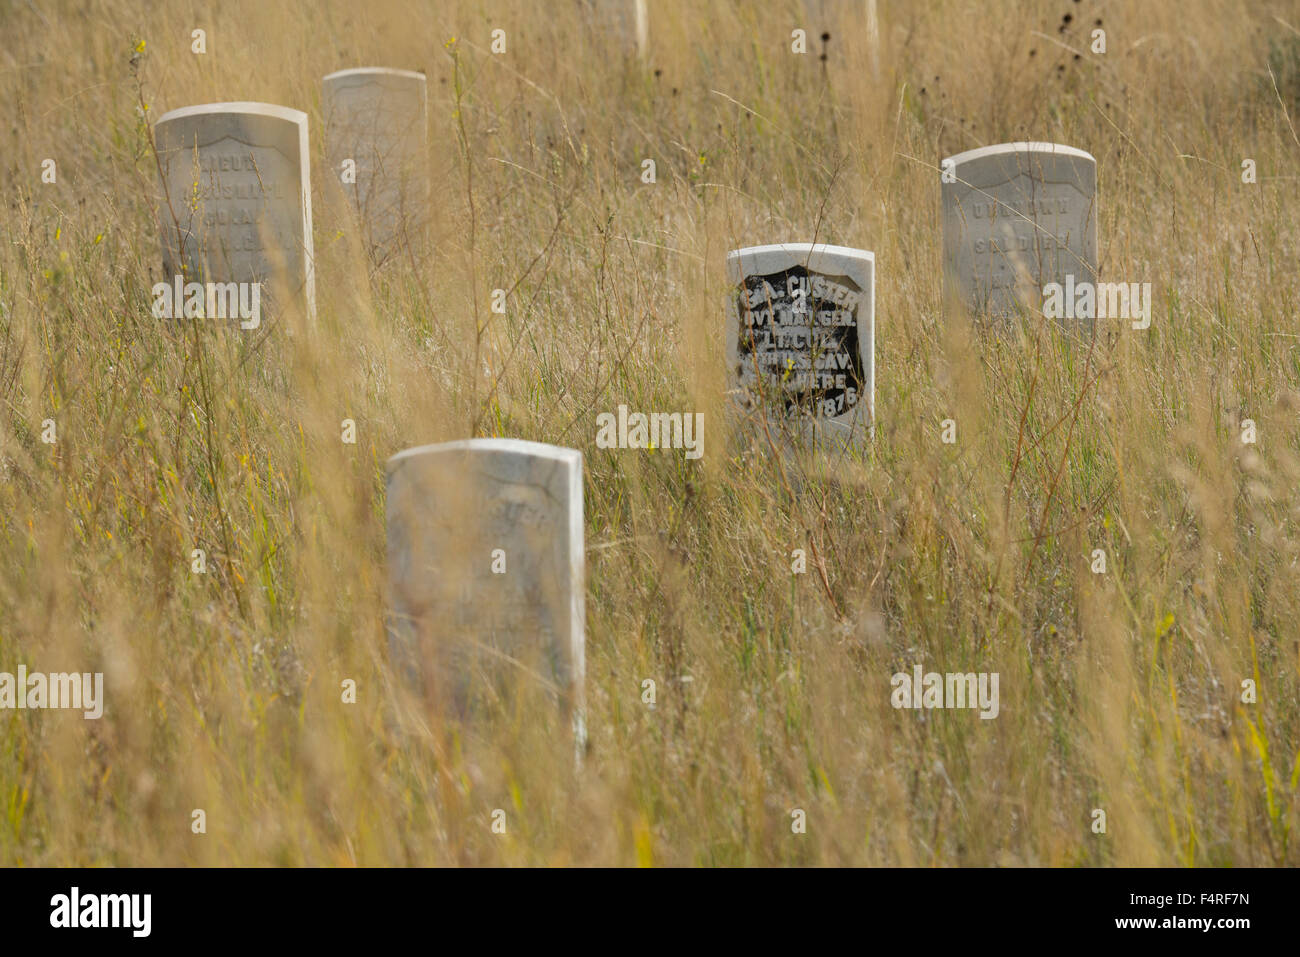 USA, Montana, Crow Indian Reservation, Great plains, Little Bighorn Battlefield National Monument, custers grave - Stock Image